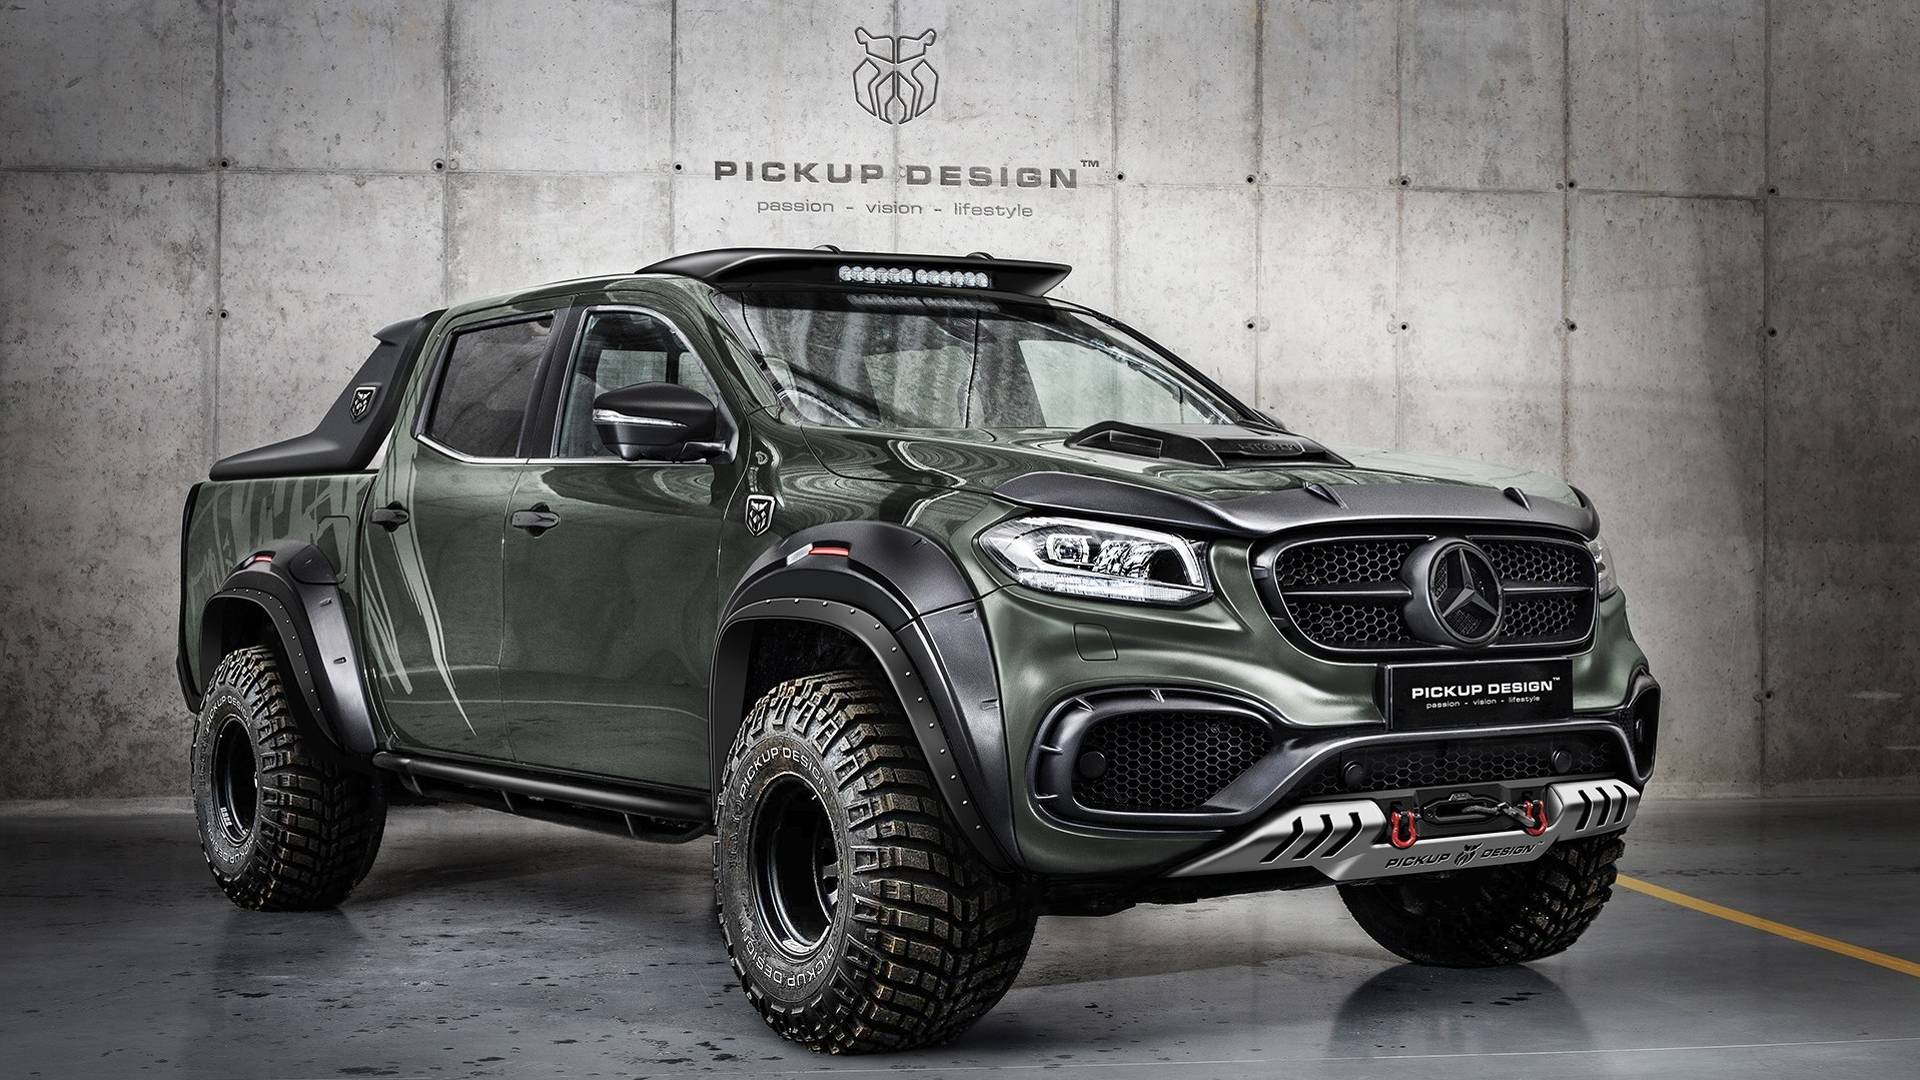 Carlex design turn mercedes benz x class into bad a bakkie for Mercedes benz x class price